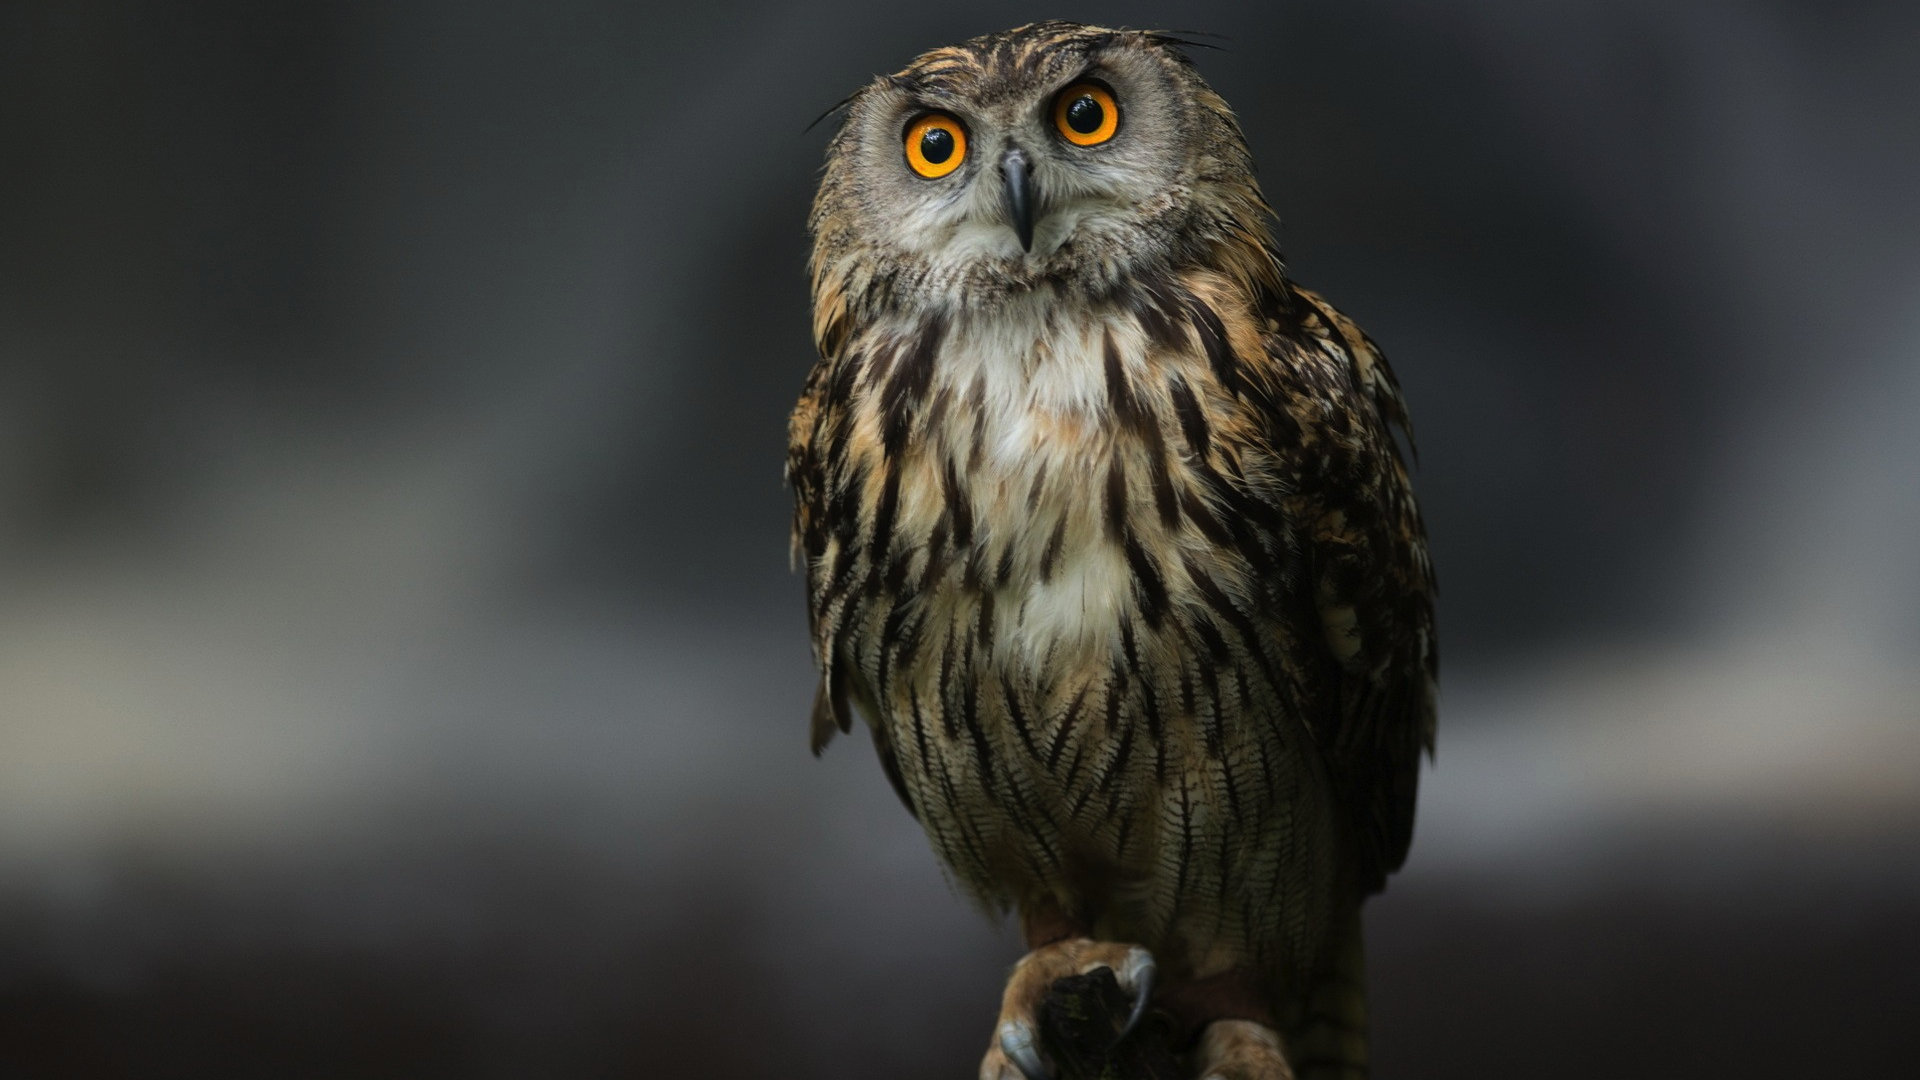 Awesome Owl free wallpaper ID:236929 for hd 1920x1080 desktop